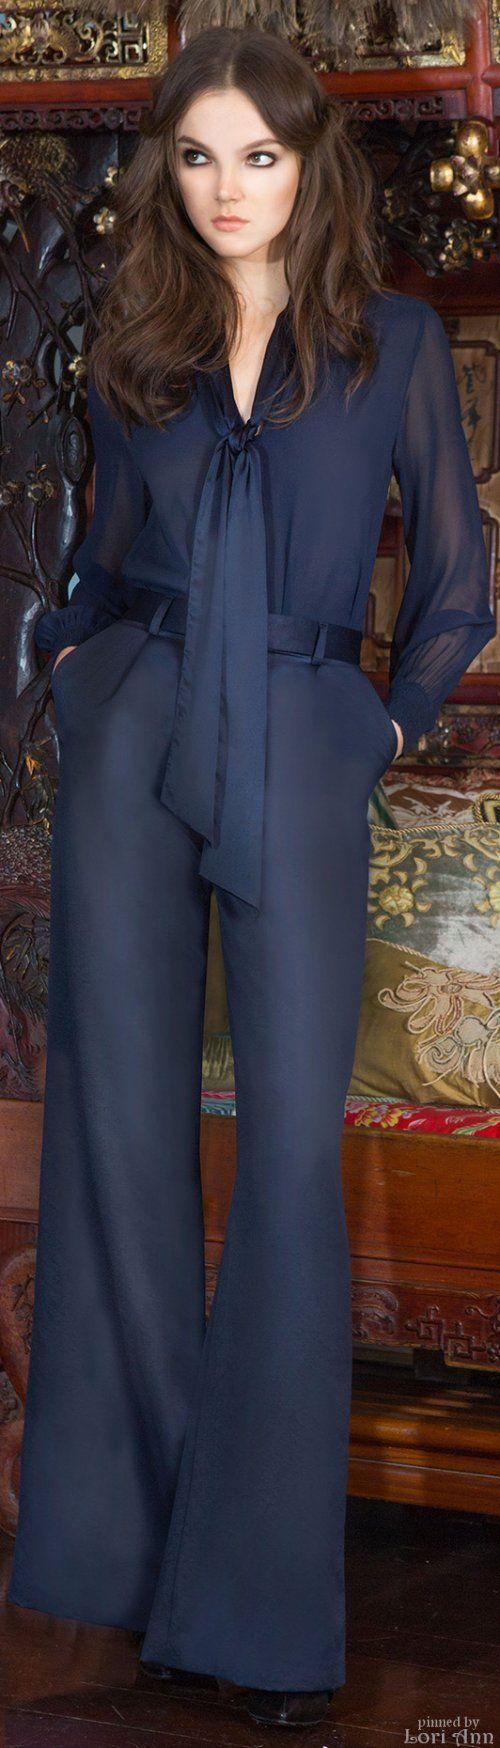 Sapphire: Clarity + Direction + Confidence | http://www.PsychicKailo.org | navy business suit; navy business outfit; office attire; office outfits; ceo; Alice + Olivia Pre-Fall 2015